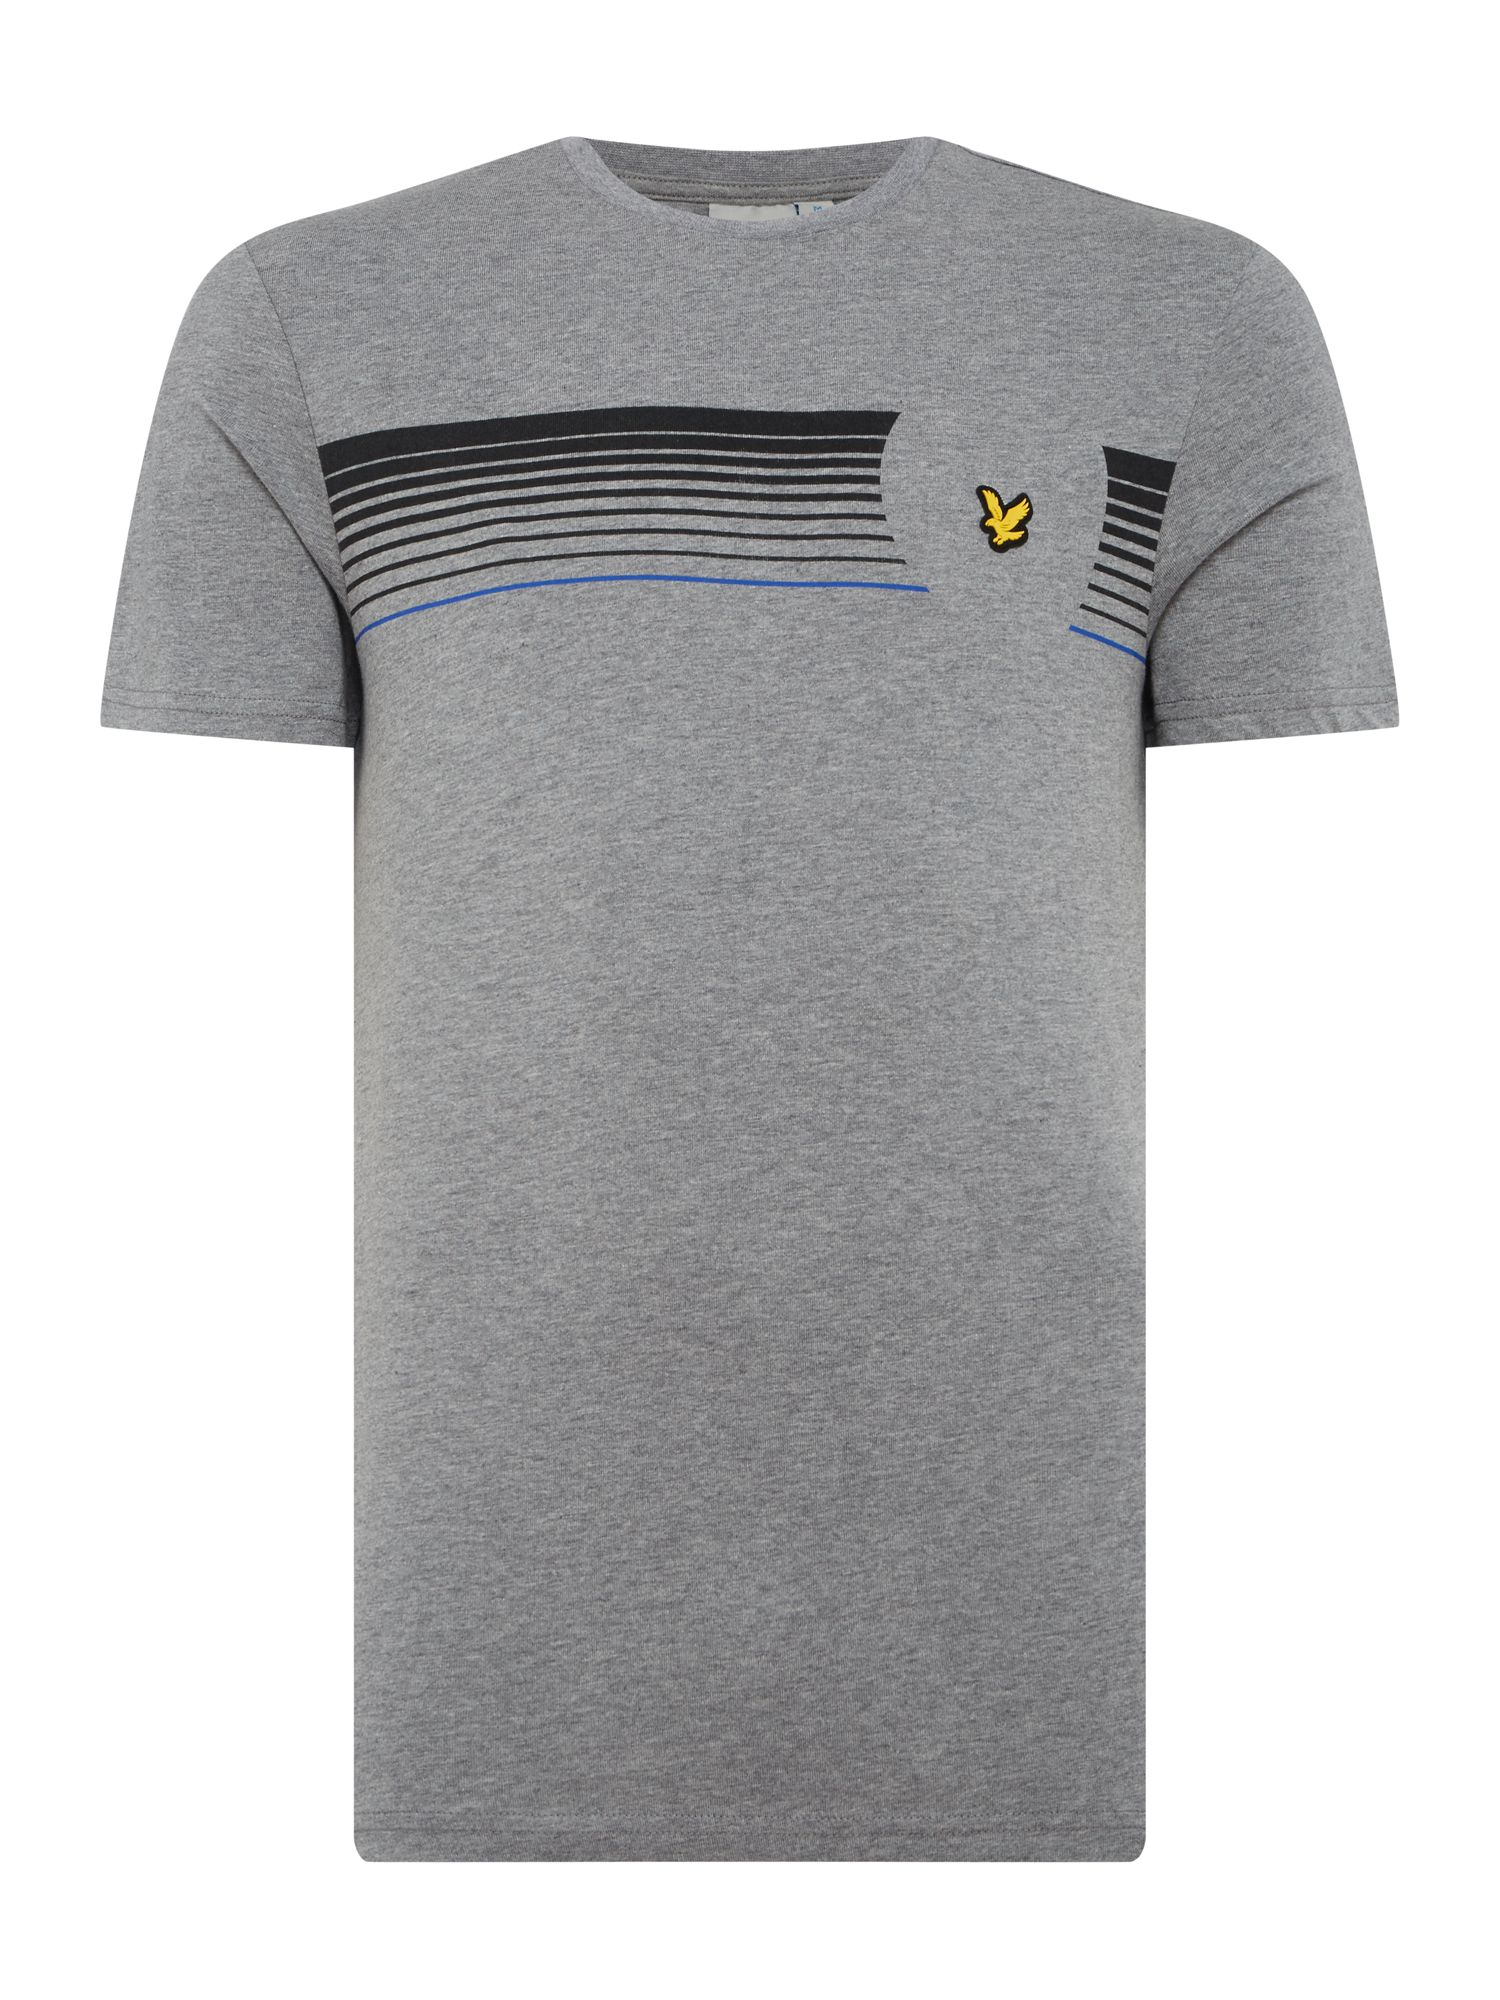 Men's Lyle and Scott Robson graphic print short sleeve tshirt, Grey Marl